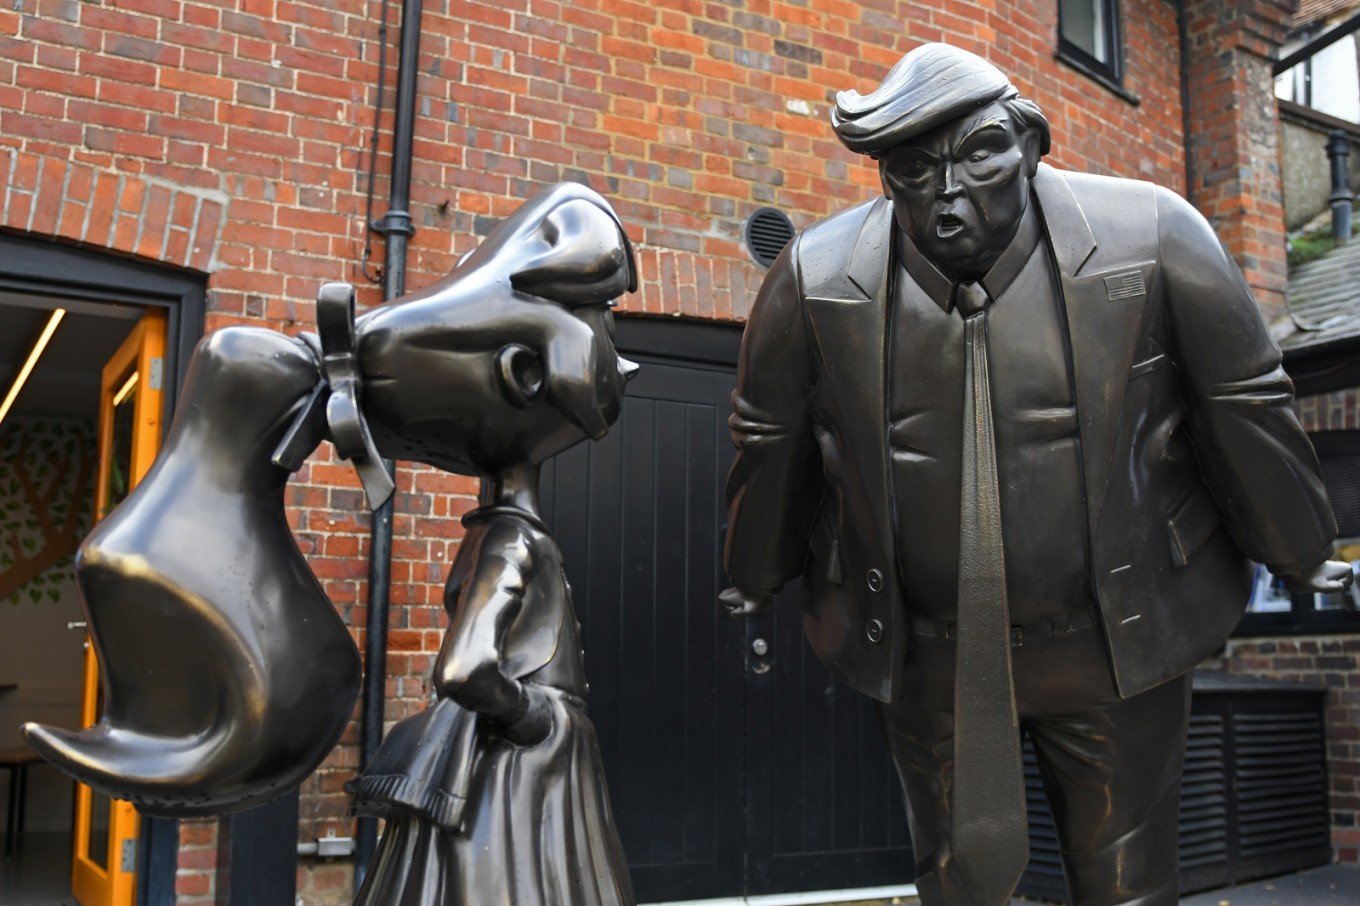 Whizzpopping worlds collide at Roald Dahl Museum